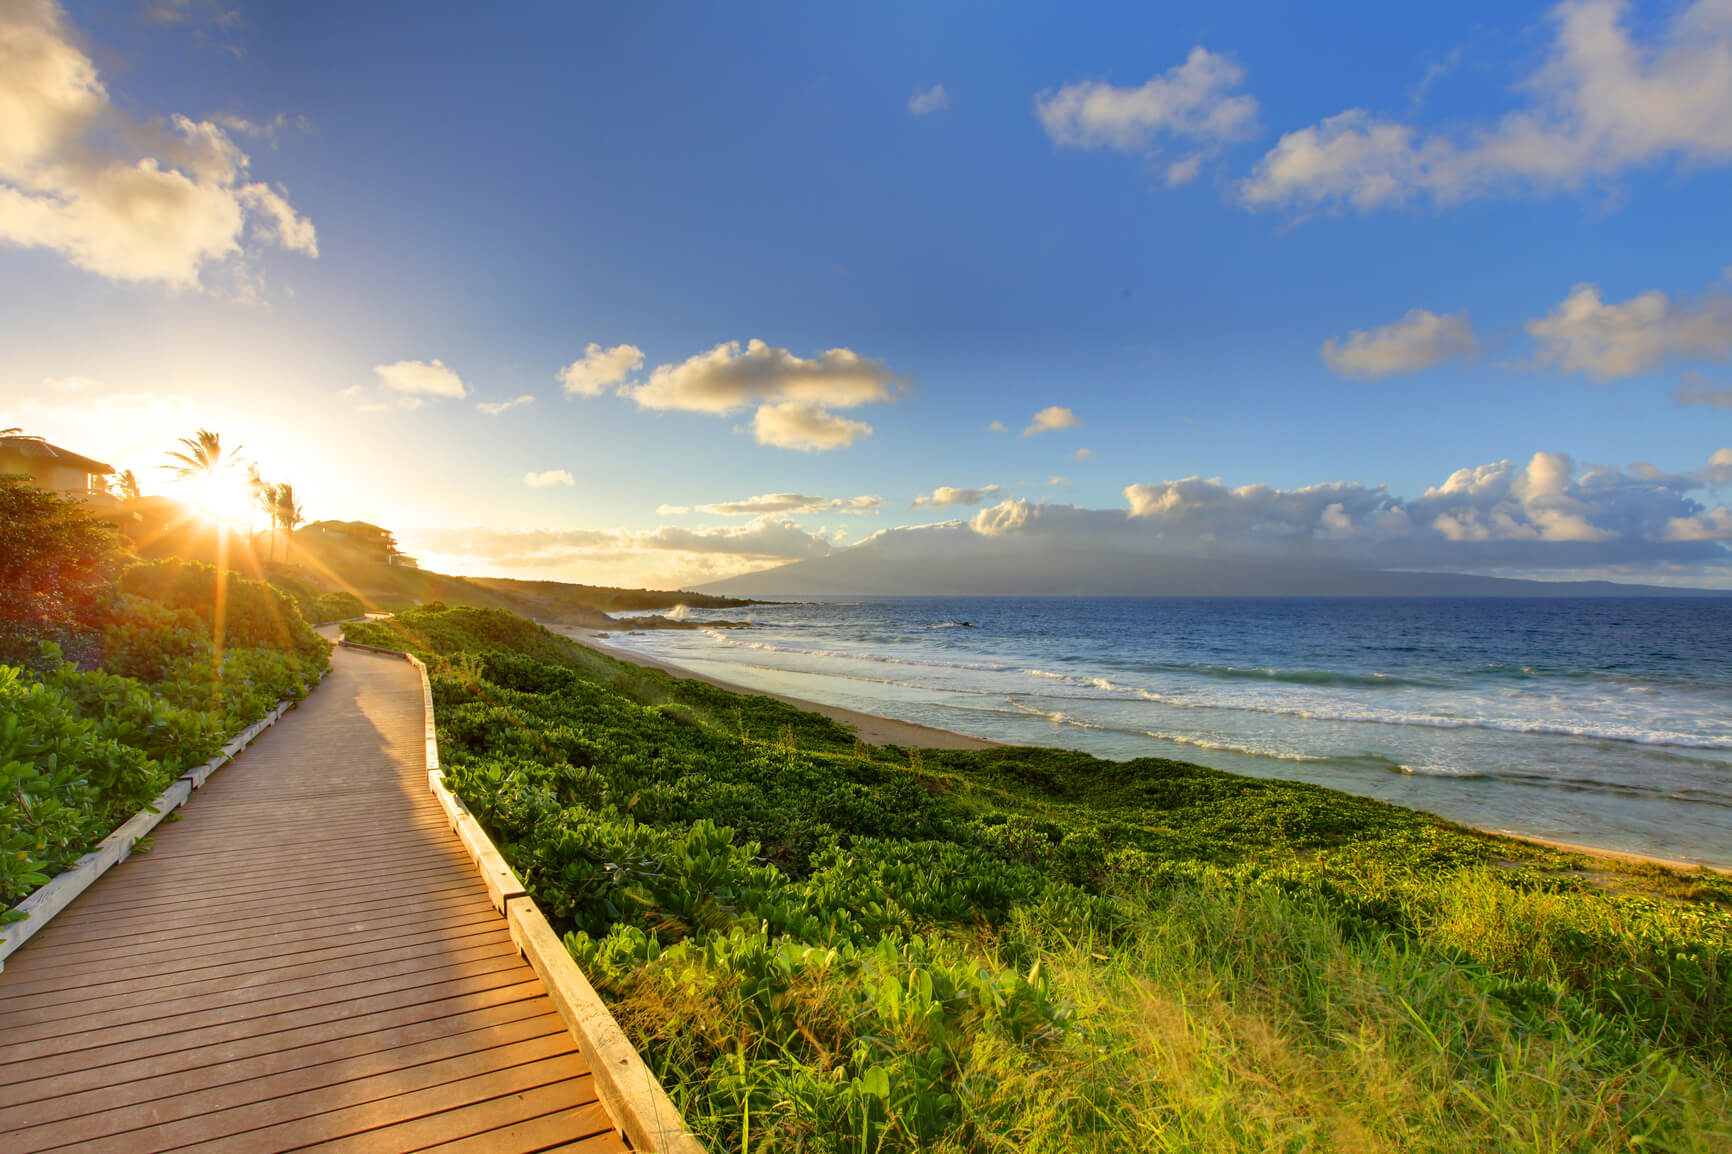 Chicago to Hawaii (& vice versa) for only $433 roundtrip